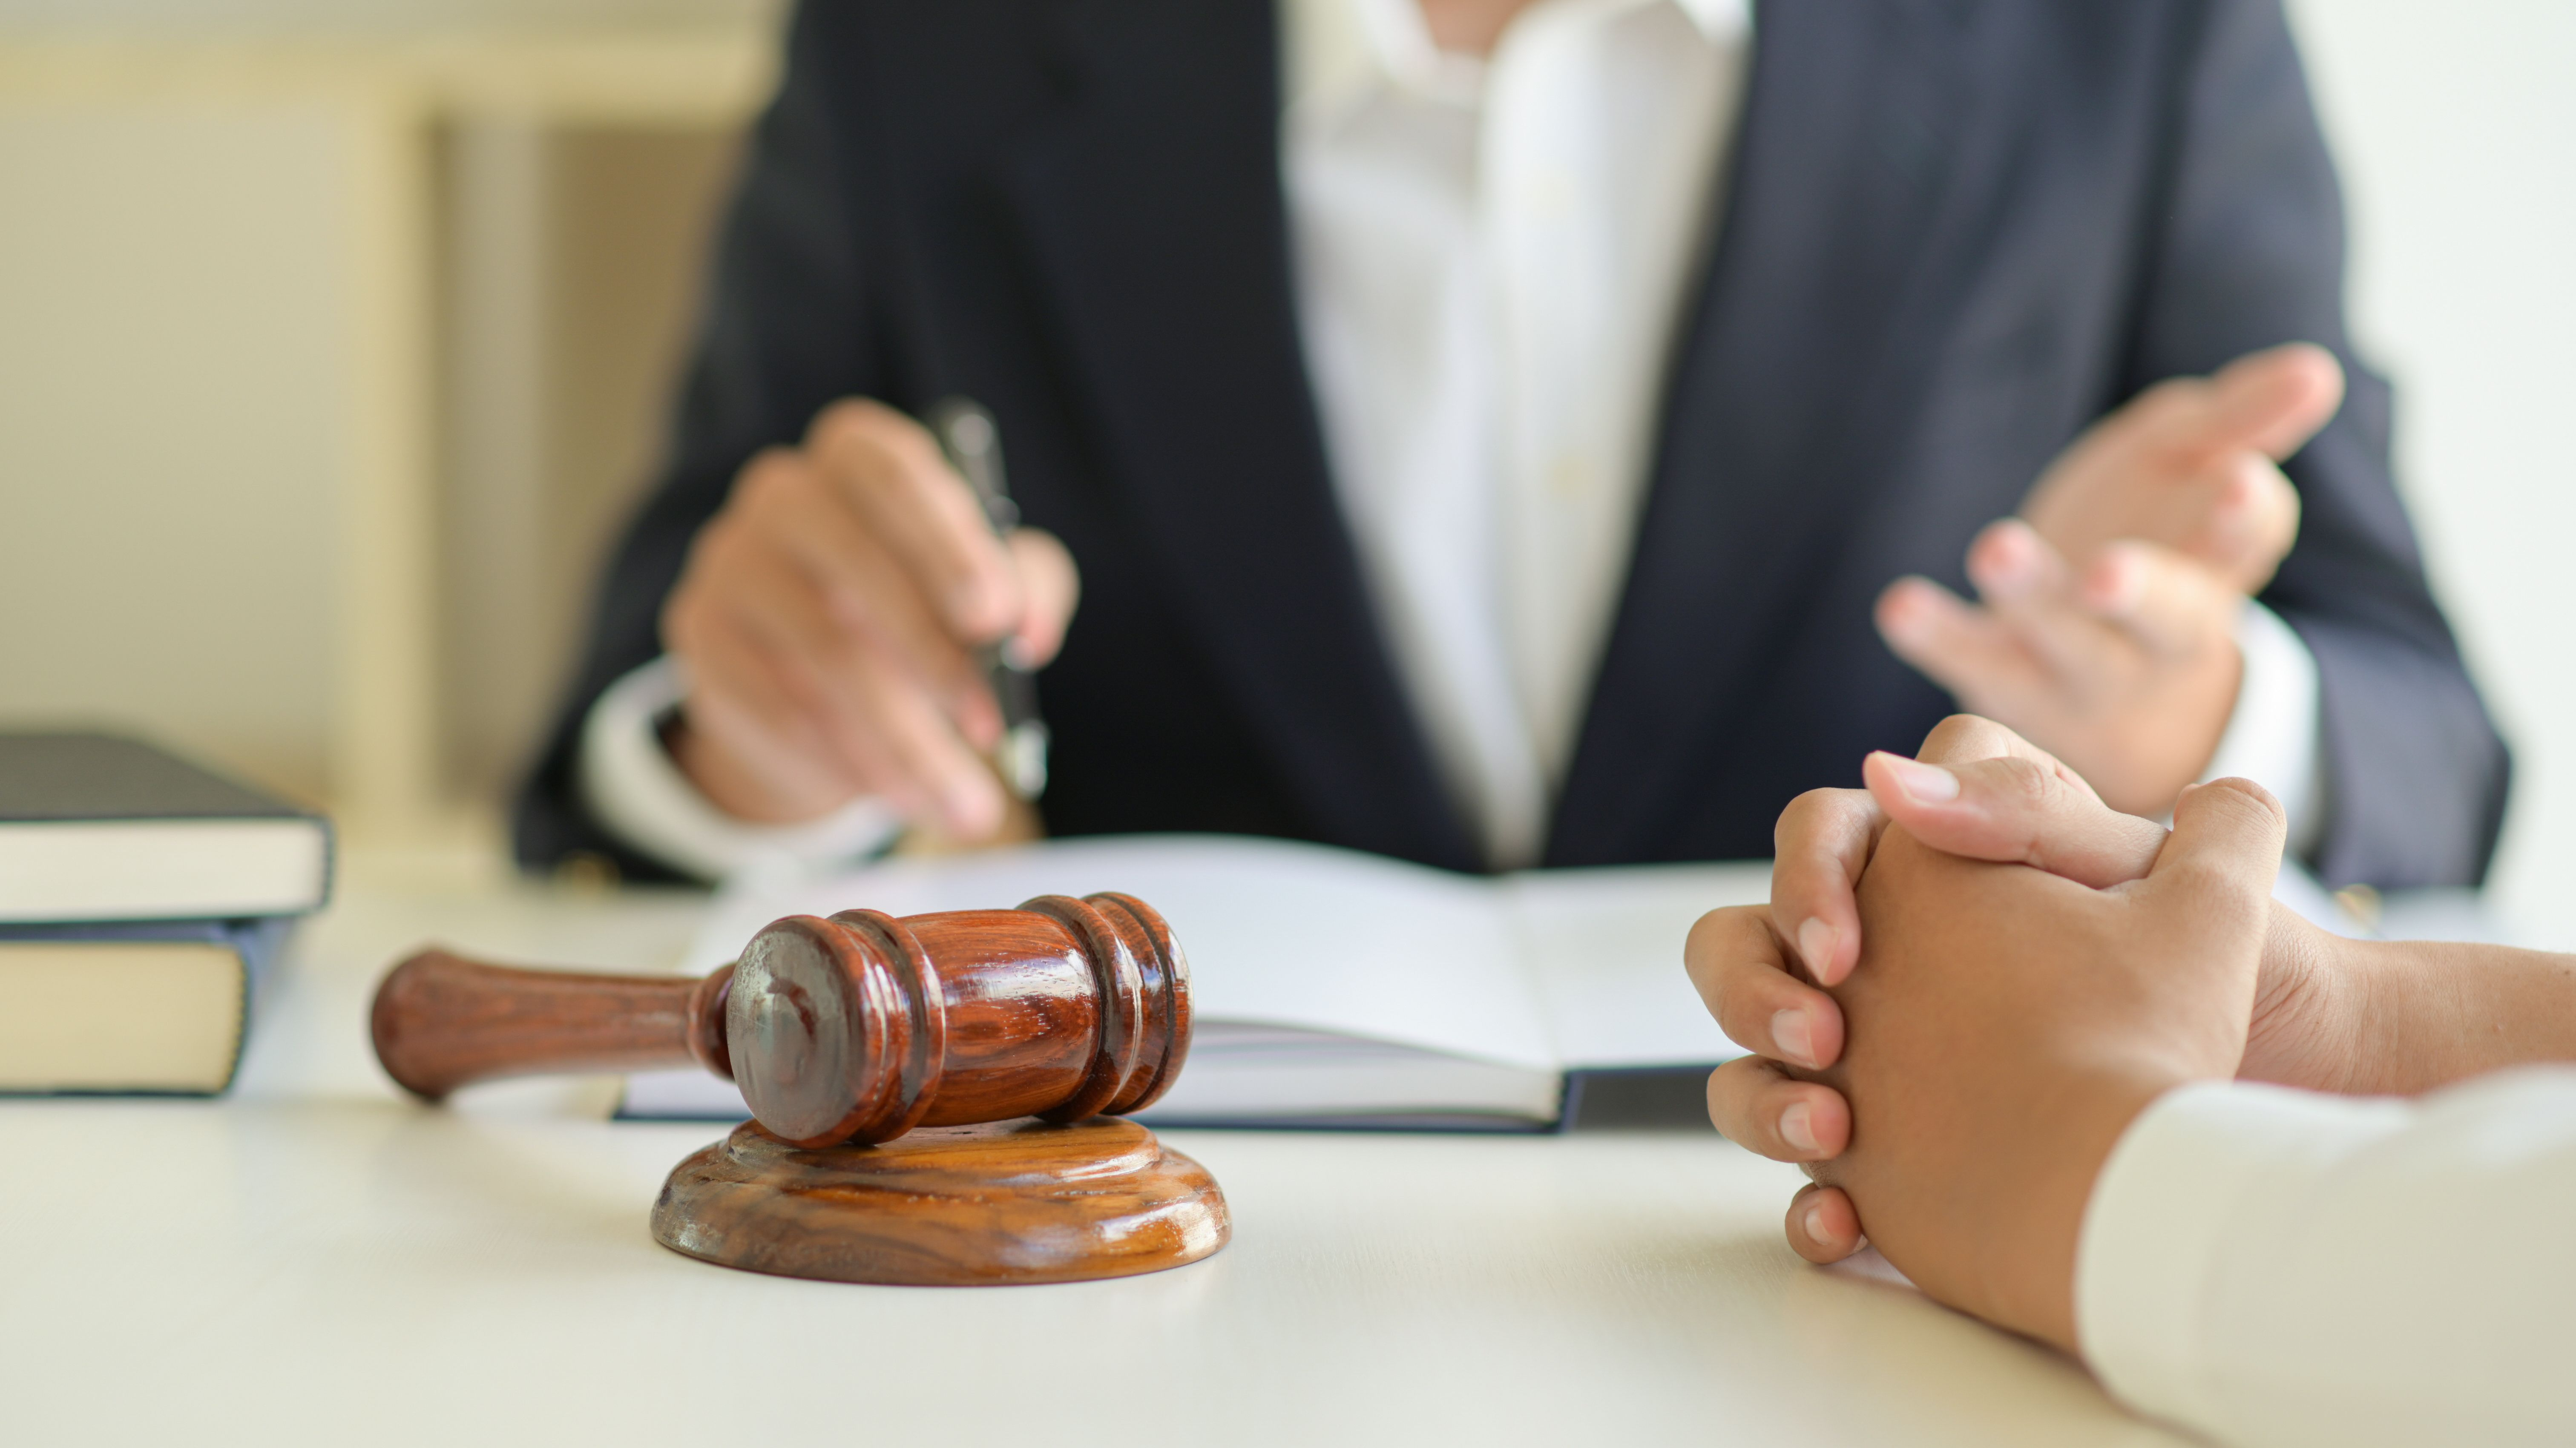 A lawyer is giving legal advice to a client